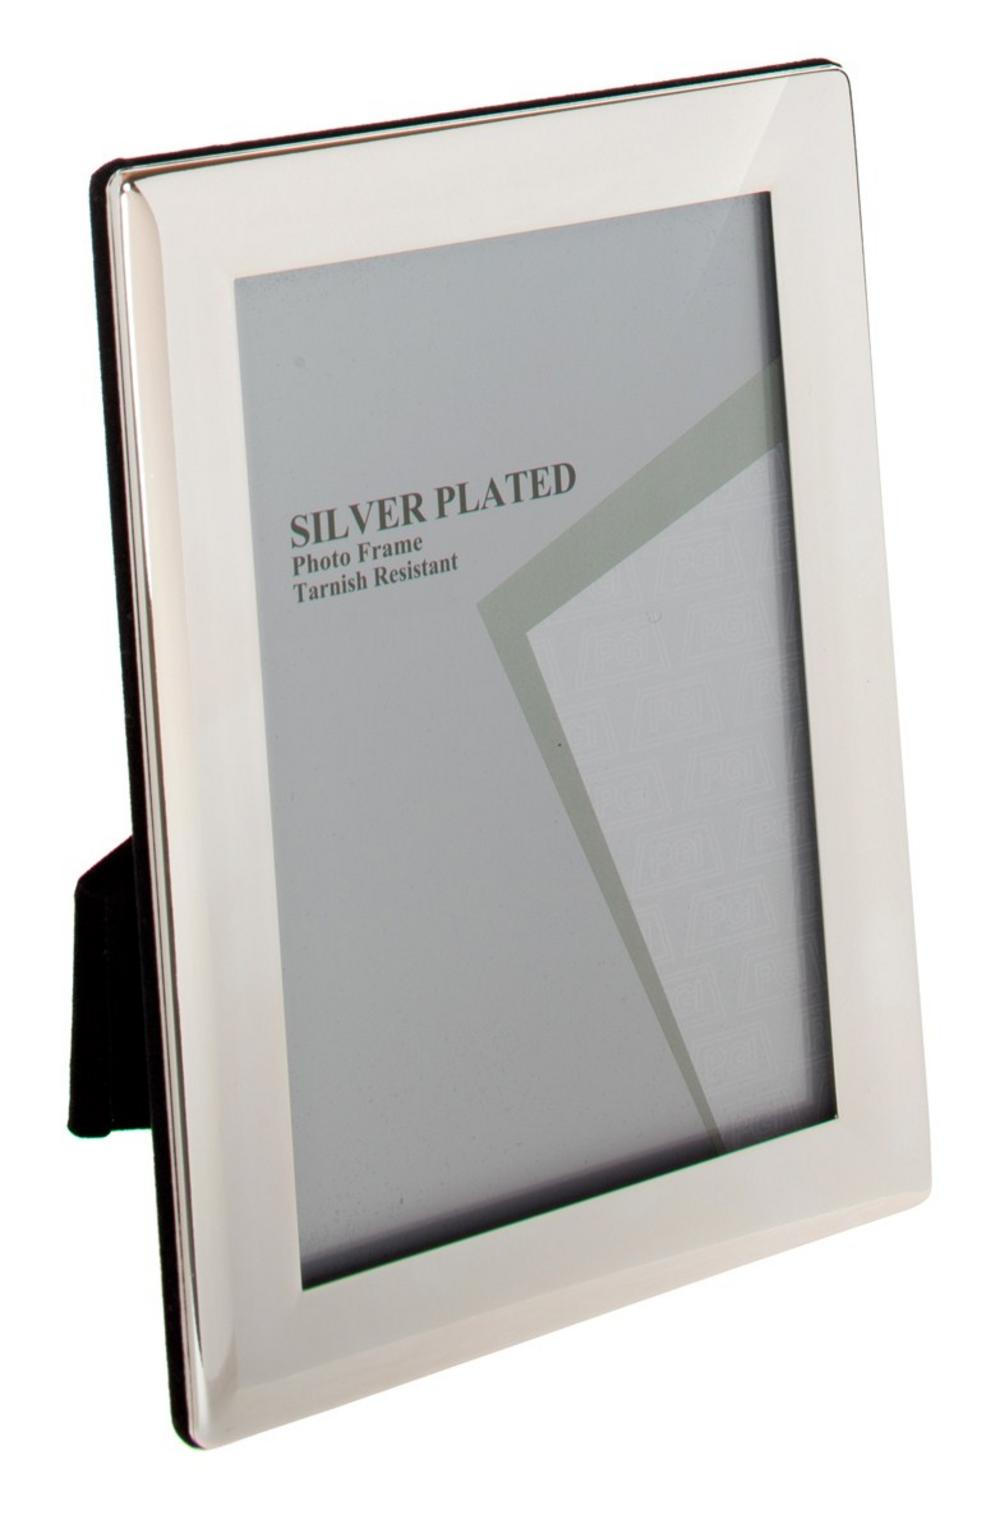 Silver Plated Picture Photo Thick Edge Frame 3.5 X 5, 4 X 6, 5 X 7, 6 X 8, 8 X10